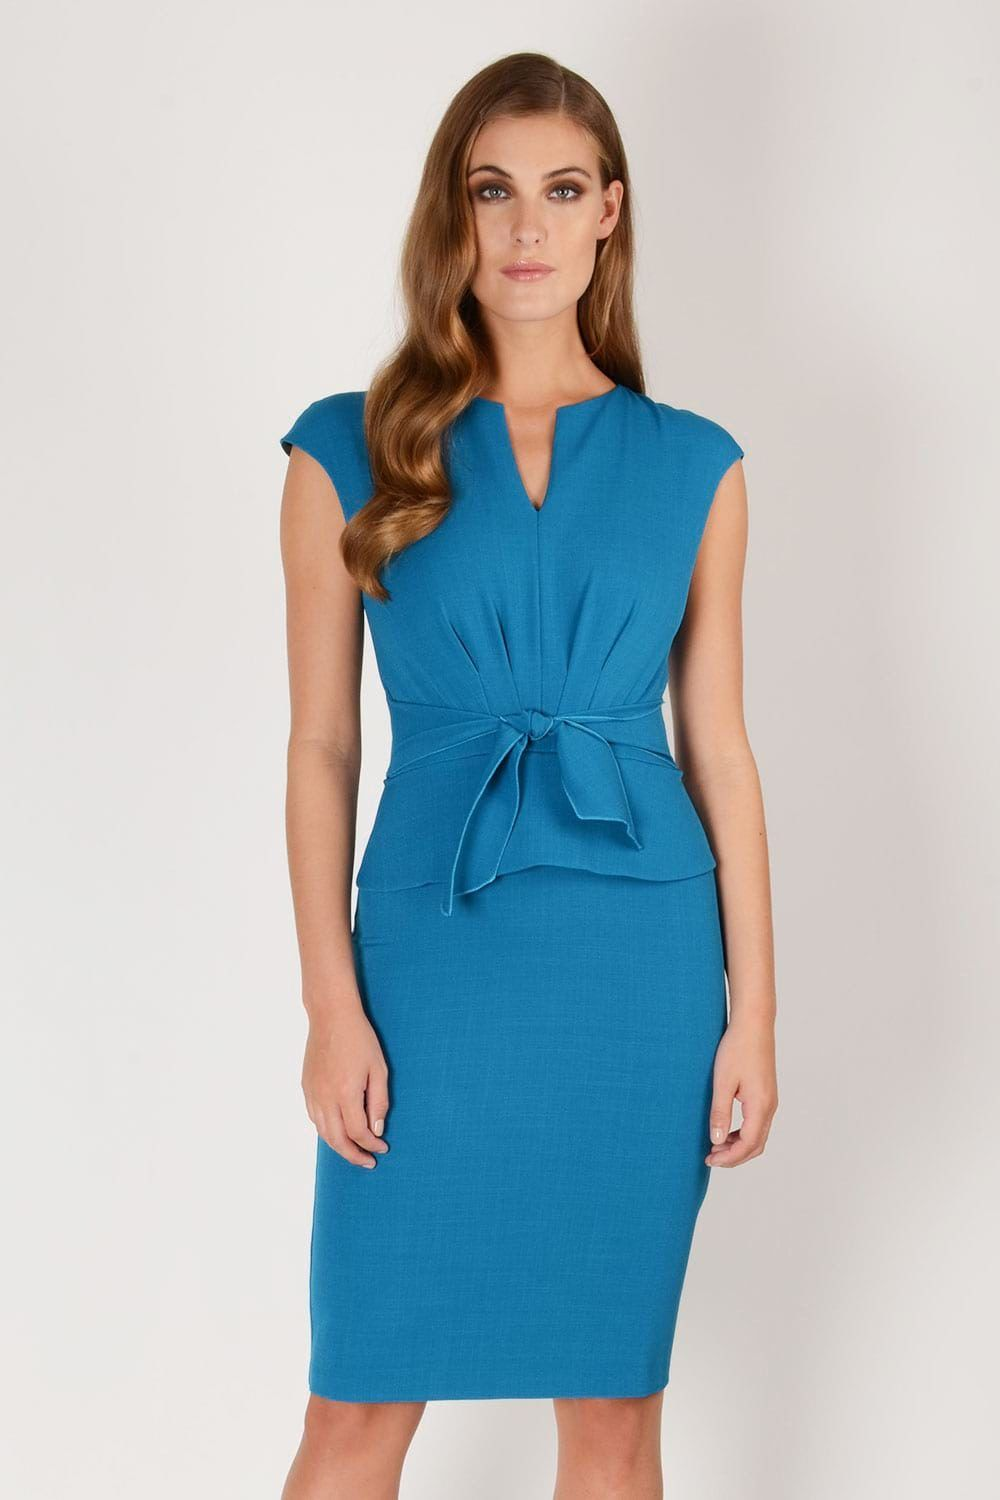 Wedding Guest Wedding Guest Dresses Wedding Guest Outfits Wedding